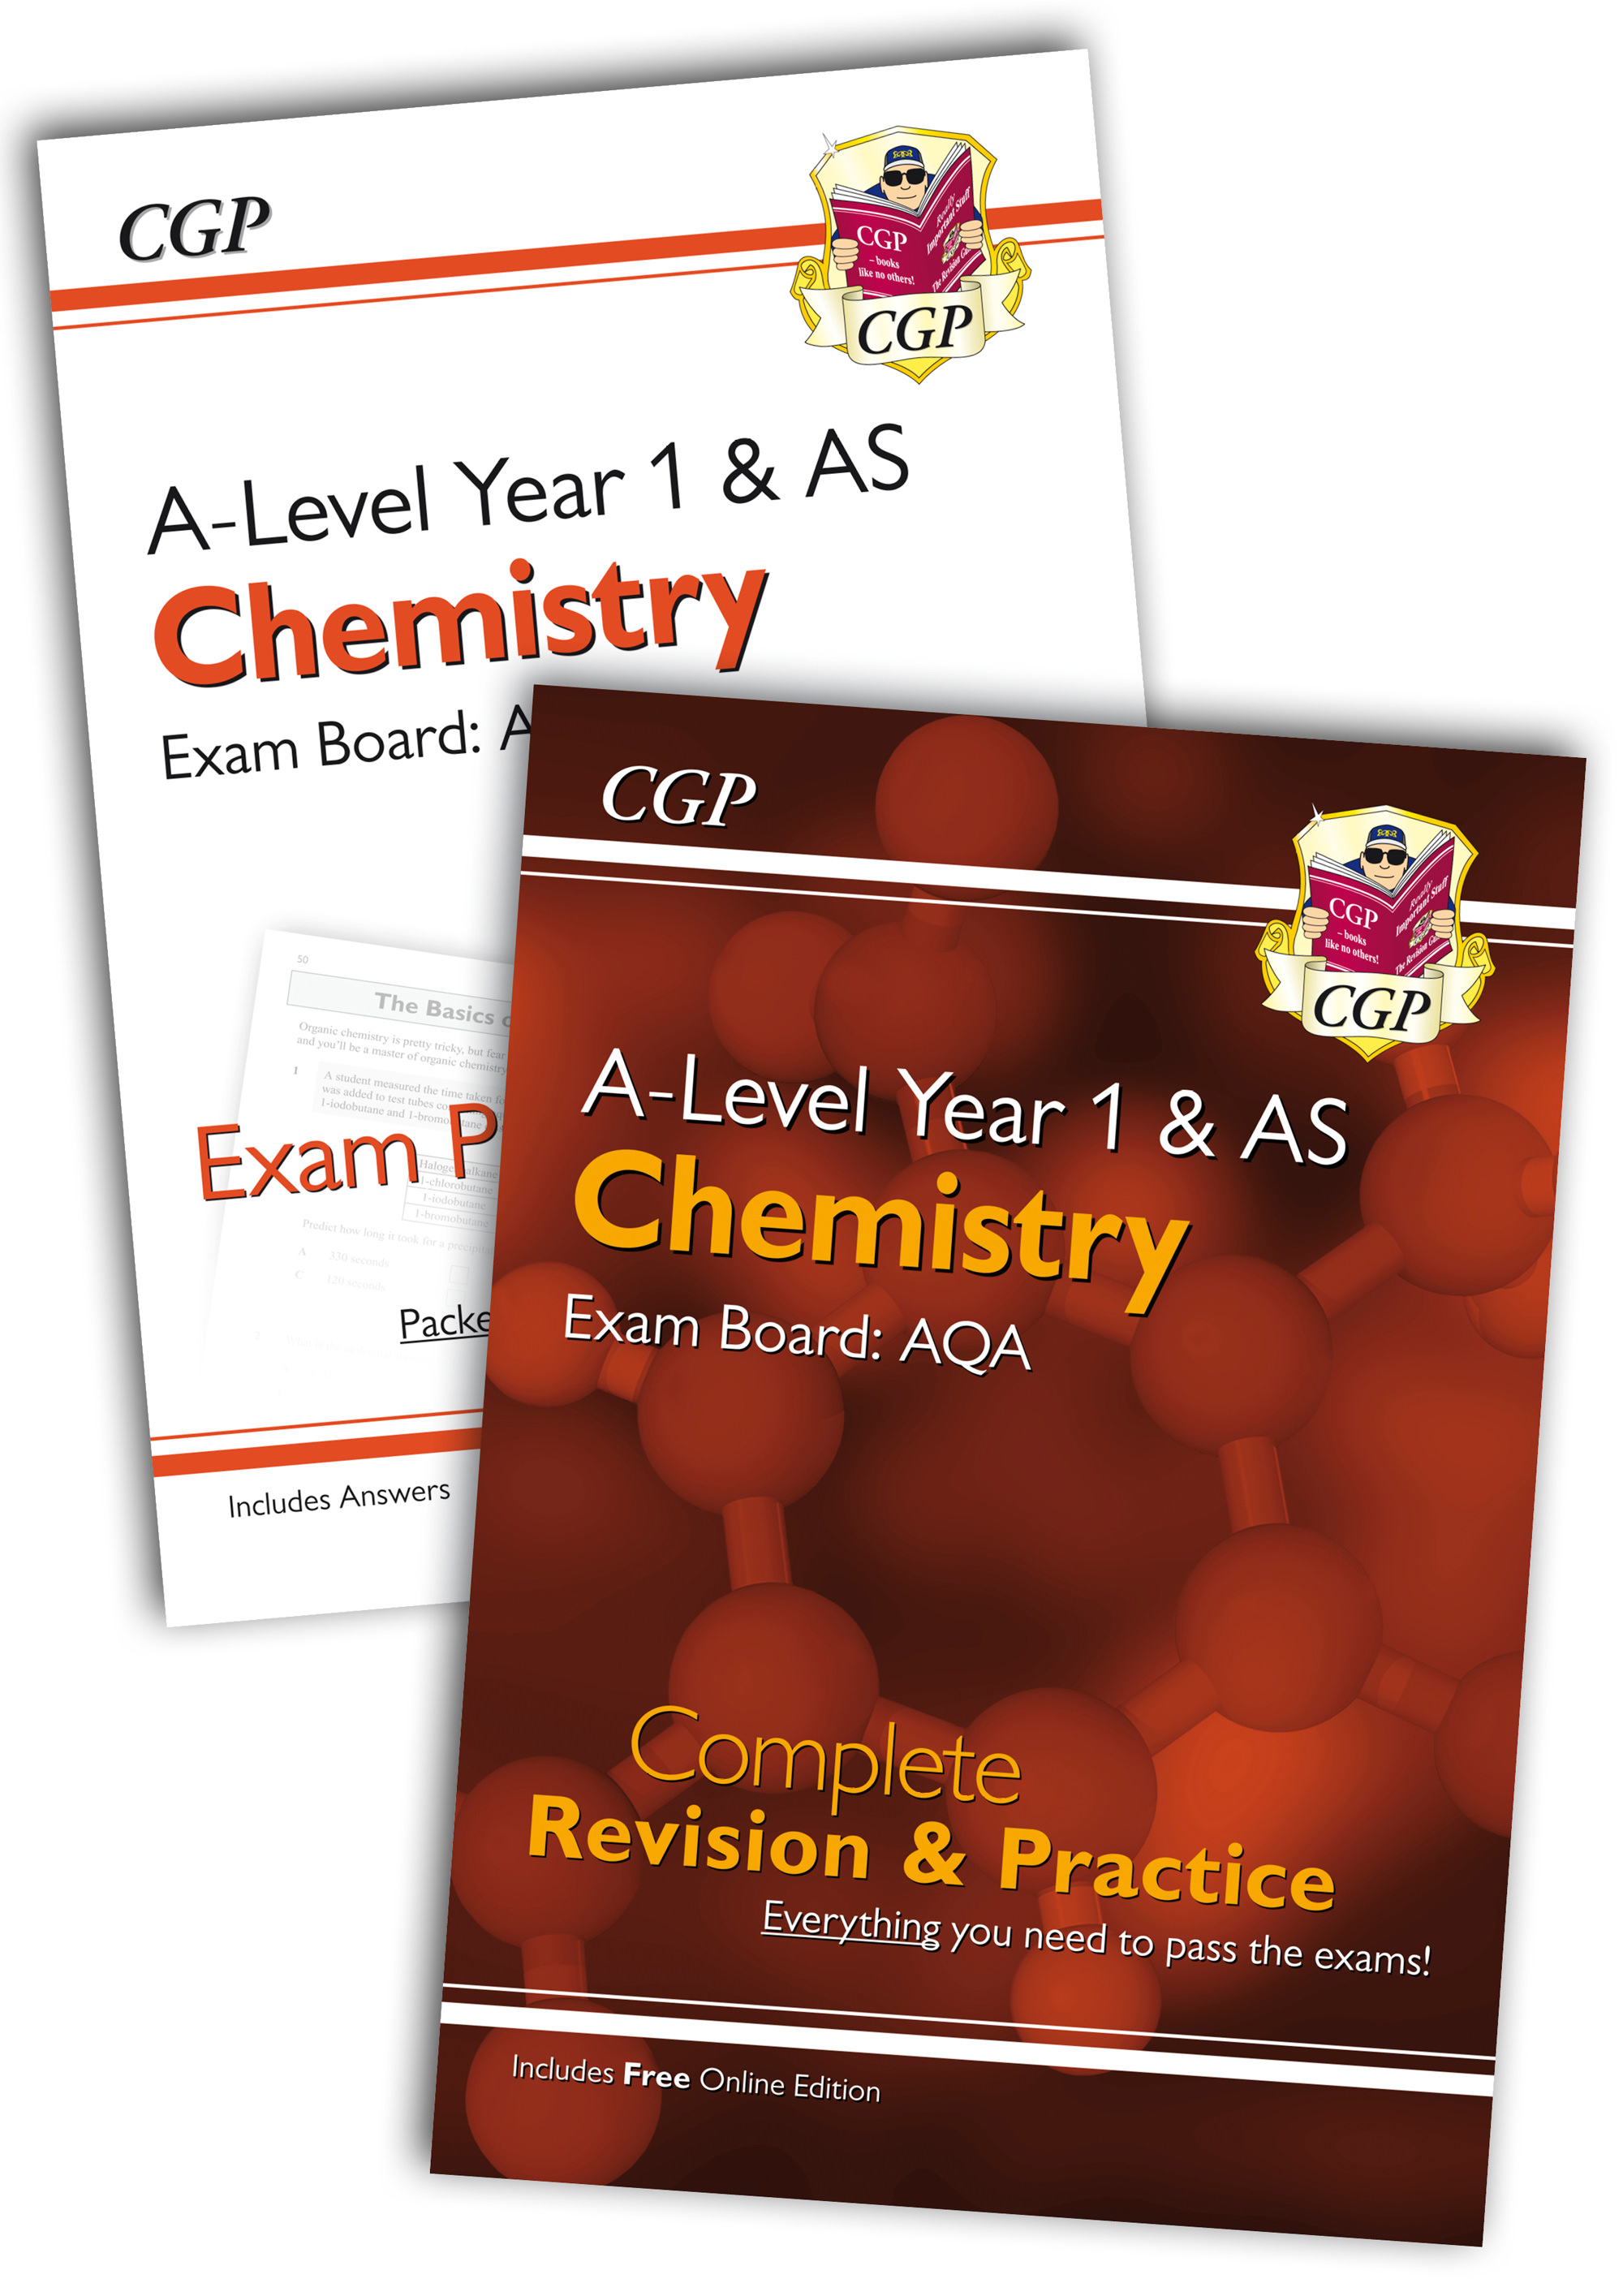 CARQB51 - New 2018 Complete Revision and Exam Practice A-Level Chemistry Bundle: AQA Year 1 & AS